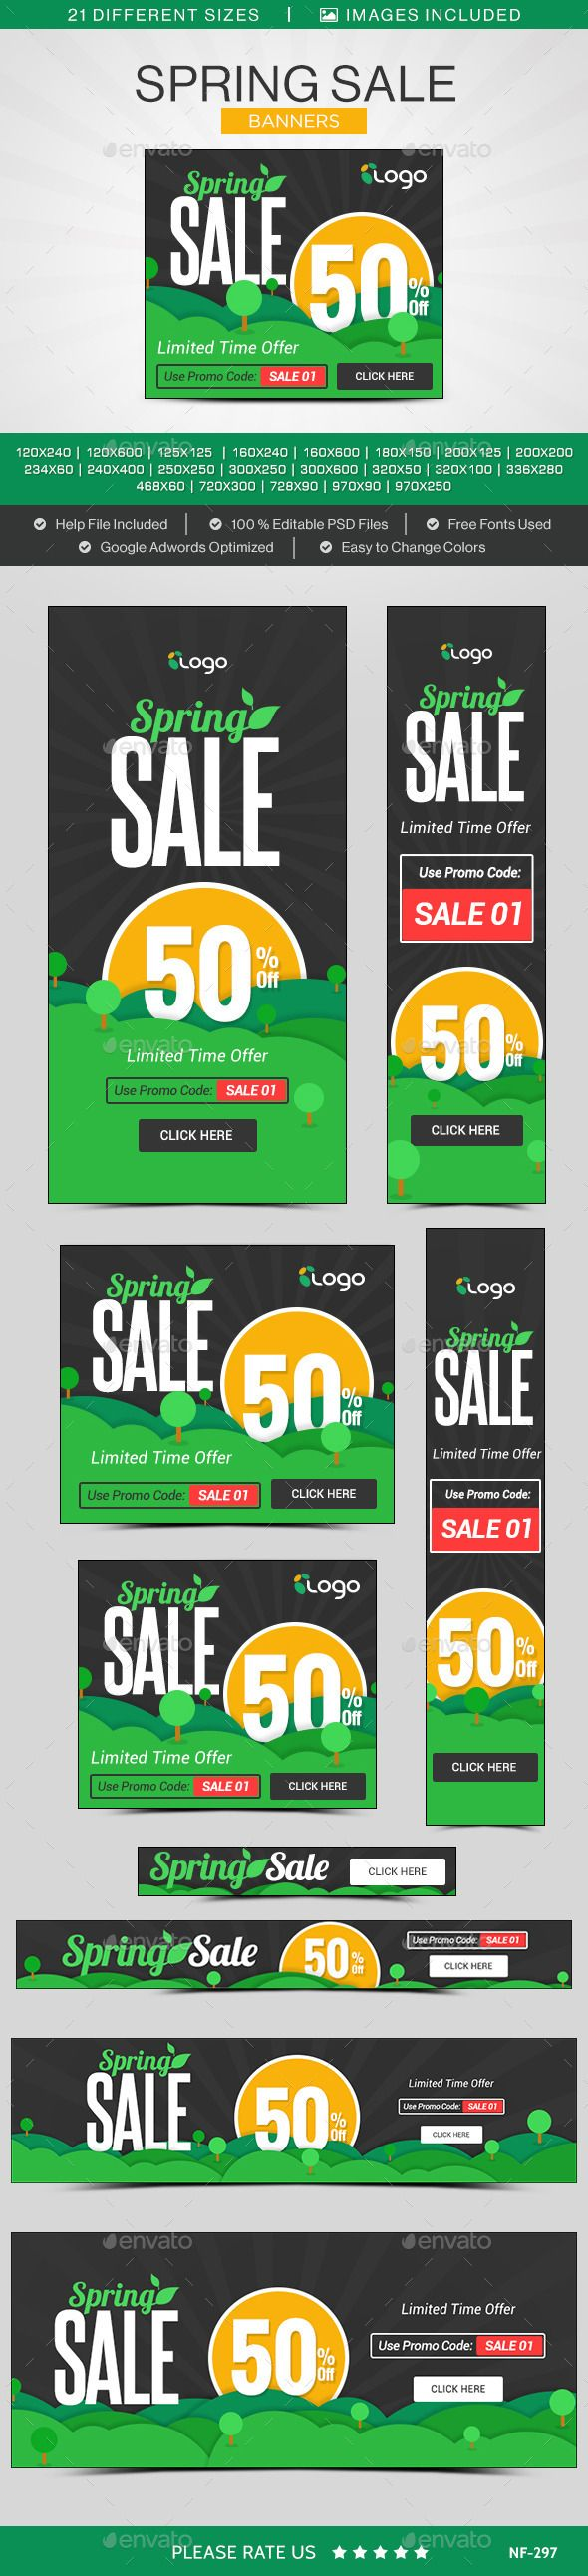 Spring Sale Banners - Banners & Ads Web Template PSD. Download here: http://graphicriver.net/item/spring-sale-banners/10869480?s_rank=1761&ref=yinkira